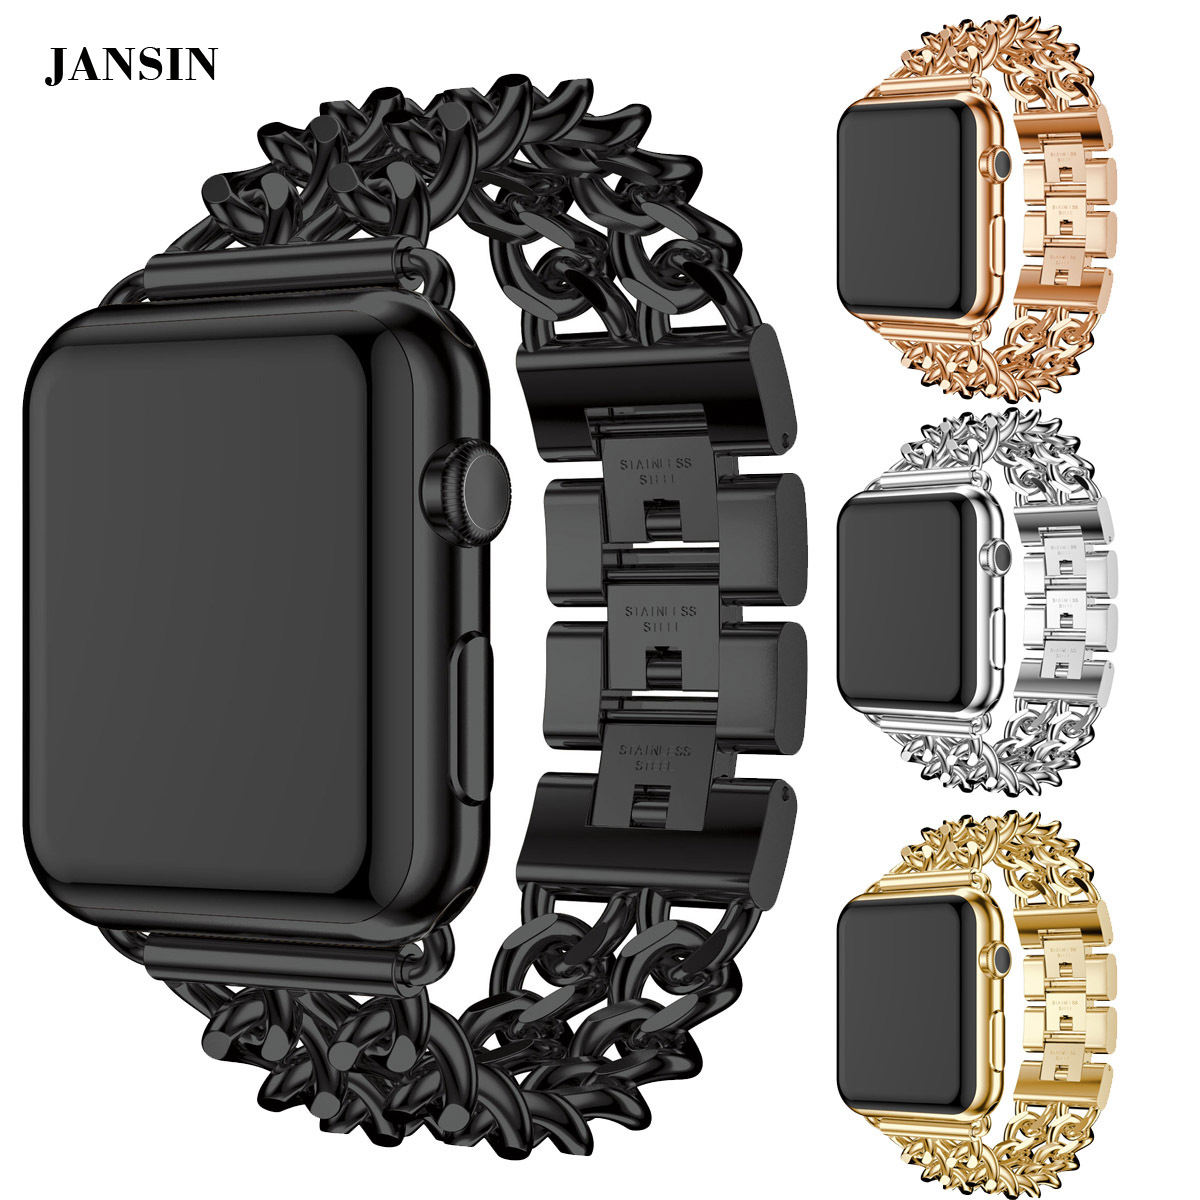 Galleria fotografica JANSIN Link Bracelet Band For Apple Watch 38mm 42mm Stainless Steel strap wristband Metal Band for iWatch Series 3 2 1